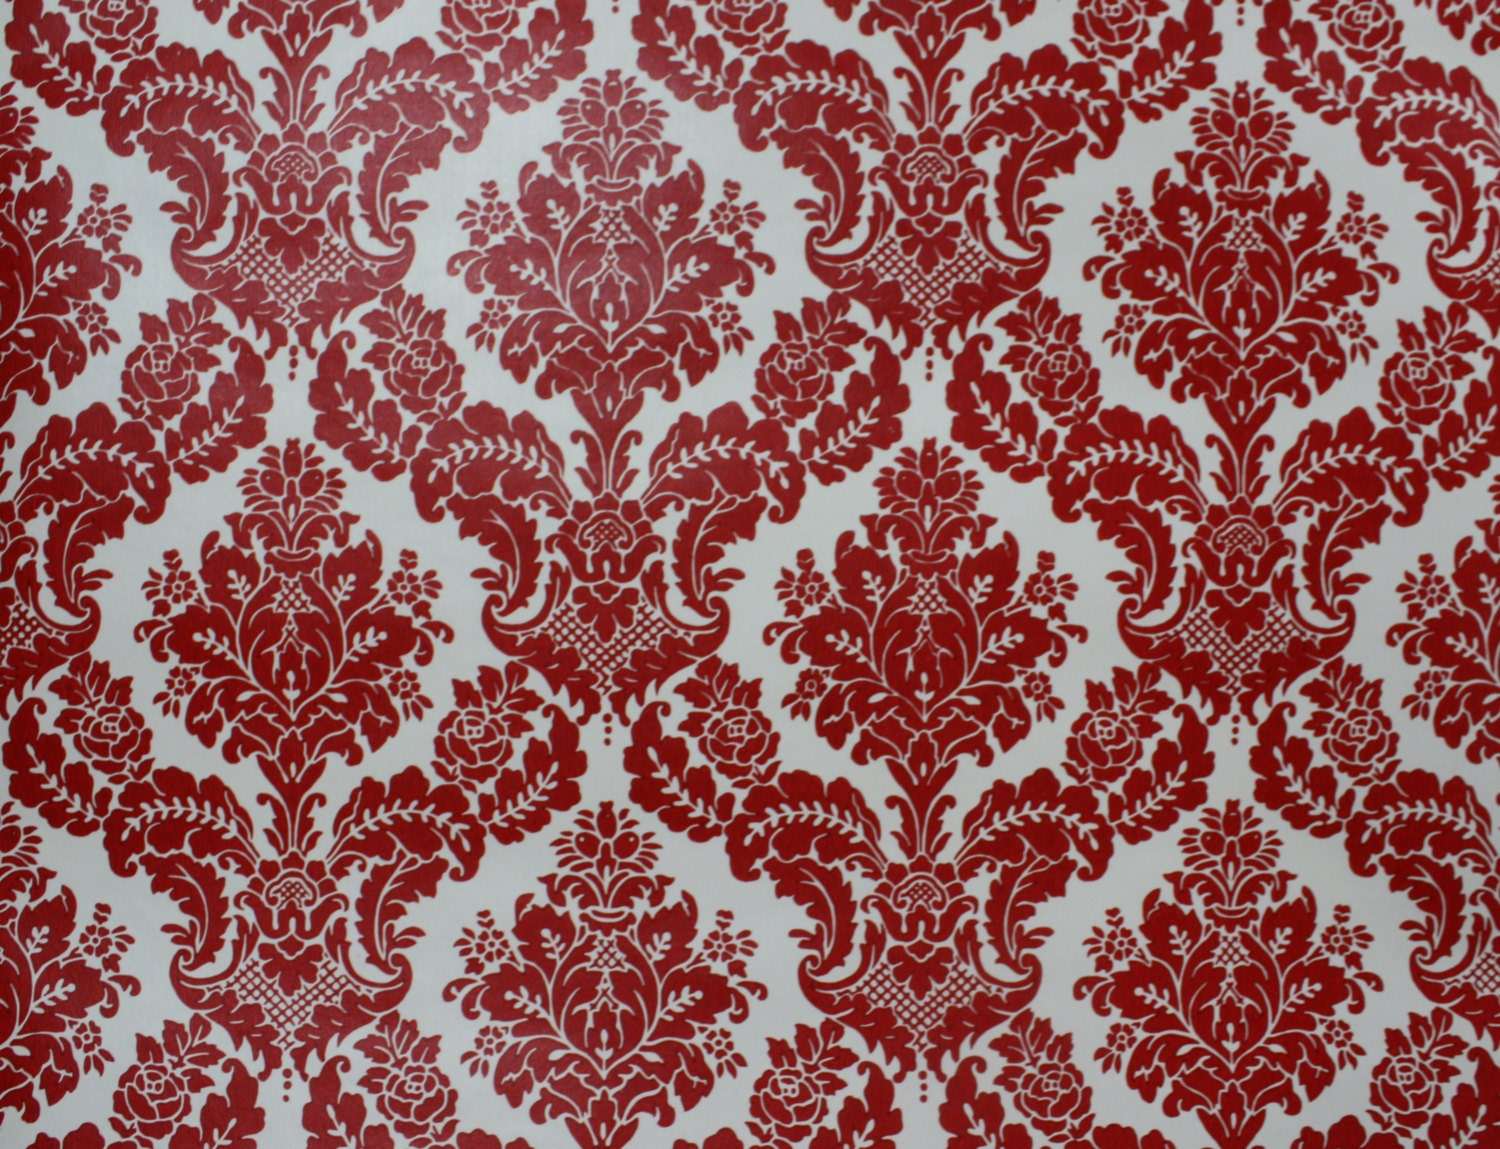 1970s vintage wallpaper retro - photo #19